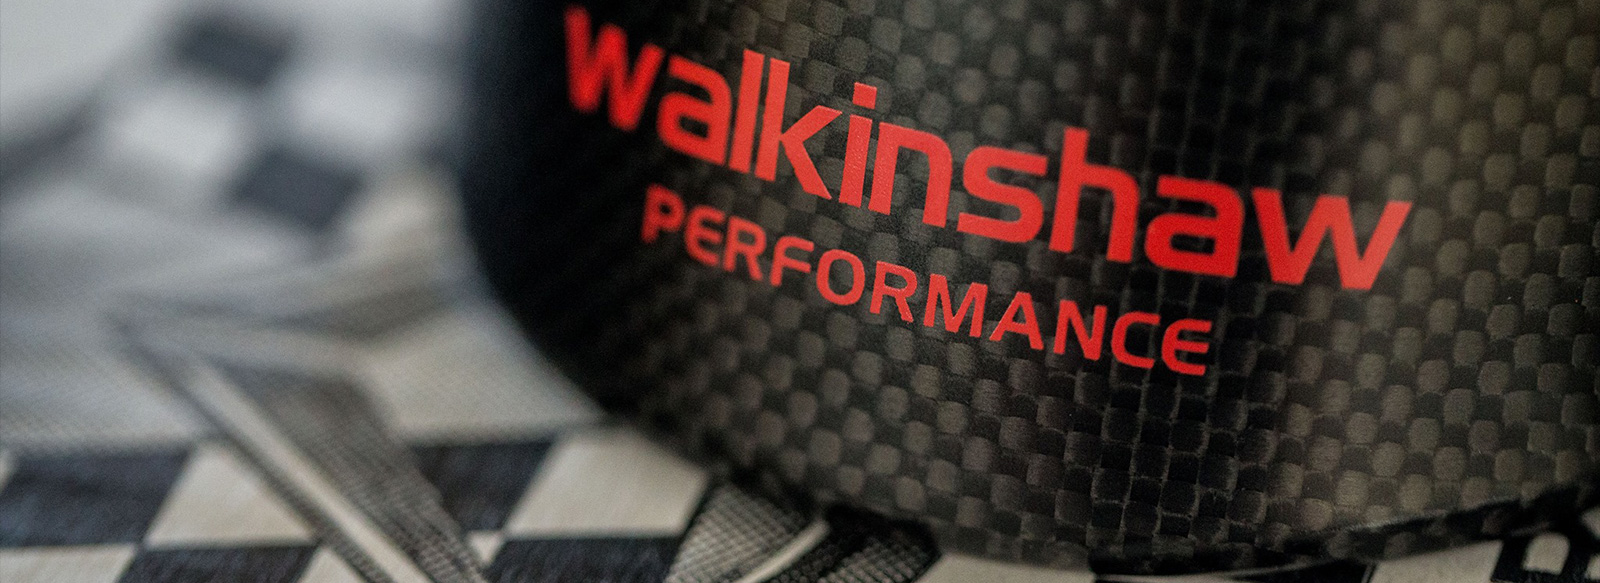 Walkinshaw Performance Finance